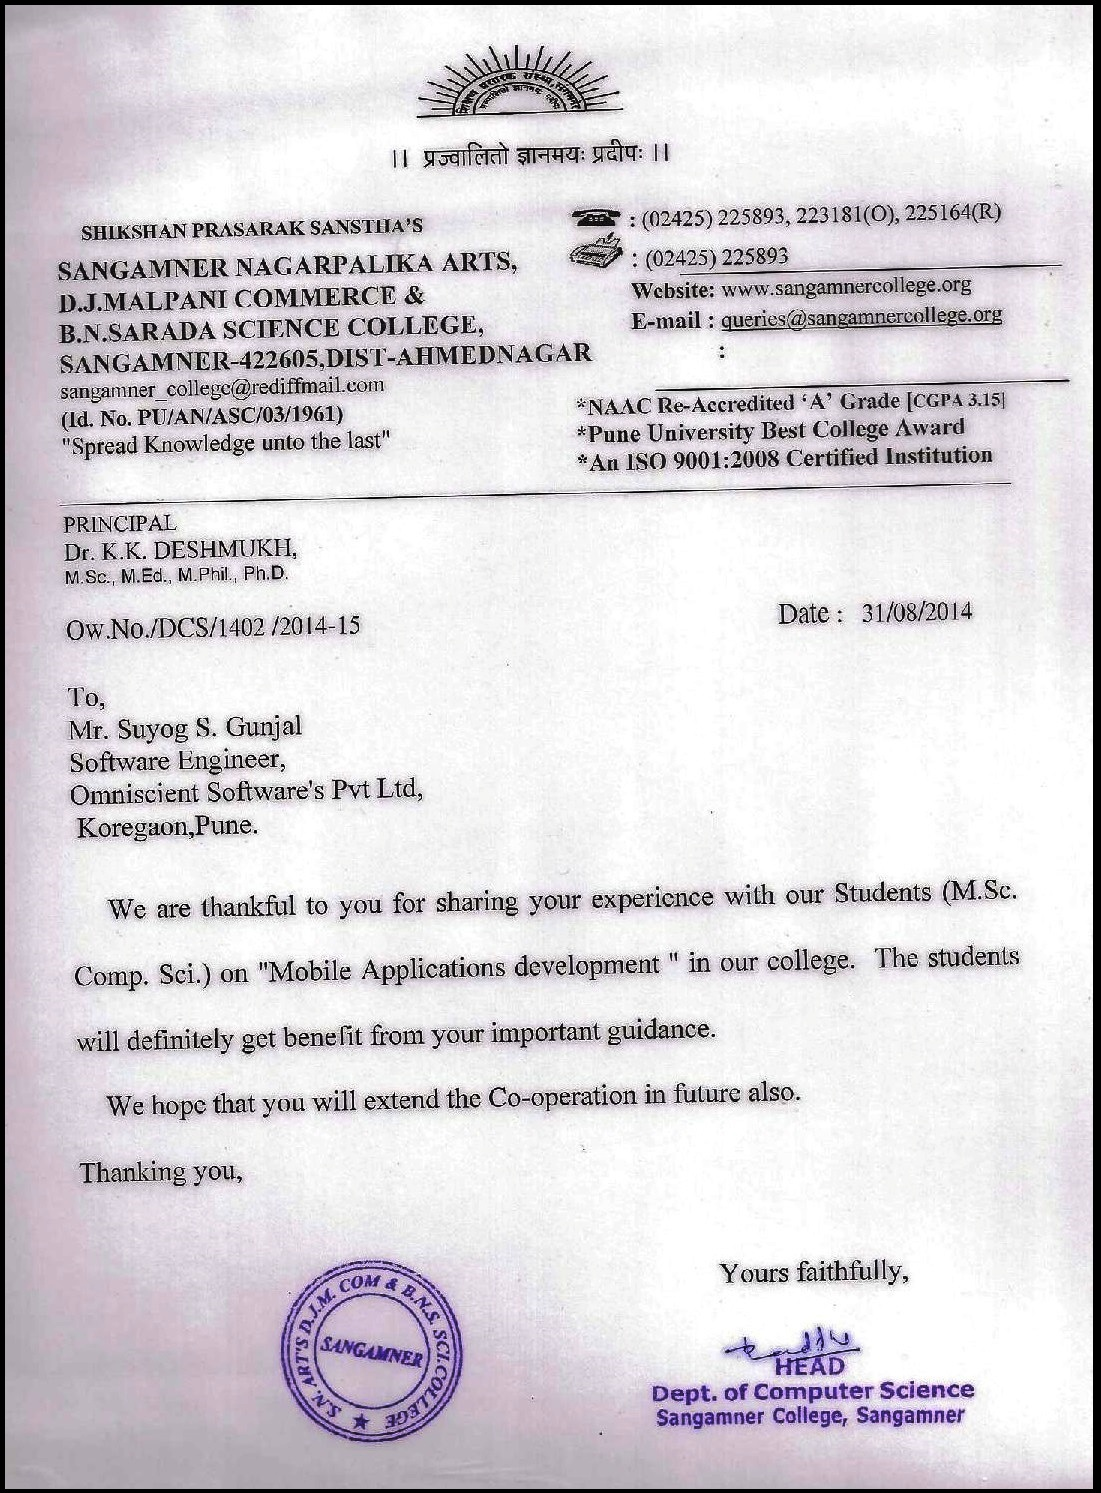 Psychic technologies suyog gunjal android seminar experience letter by sangamner college 2014 yelopaper Gallery